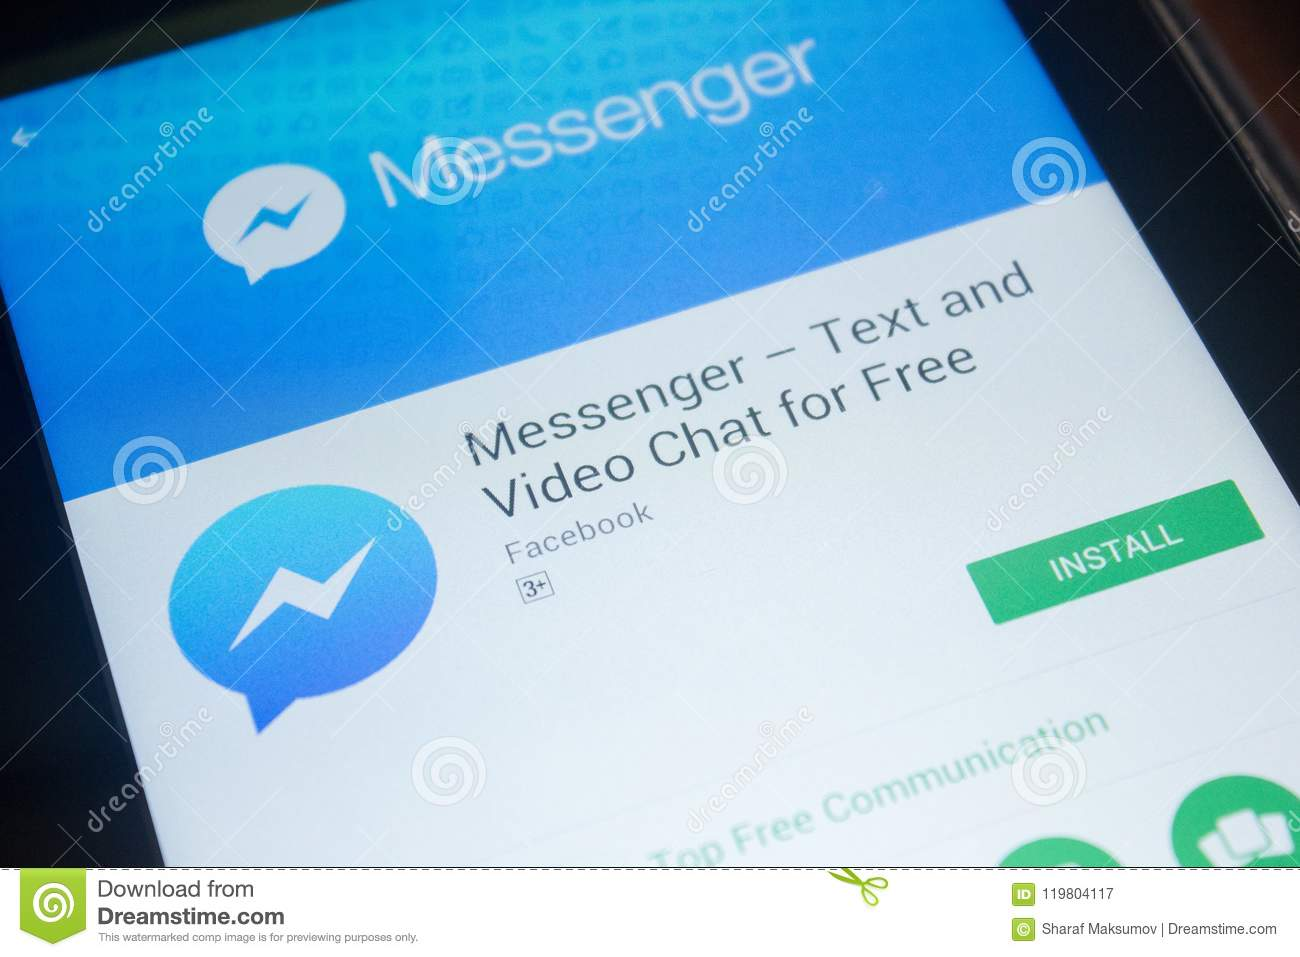 Russian chat messenger